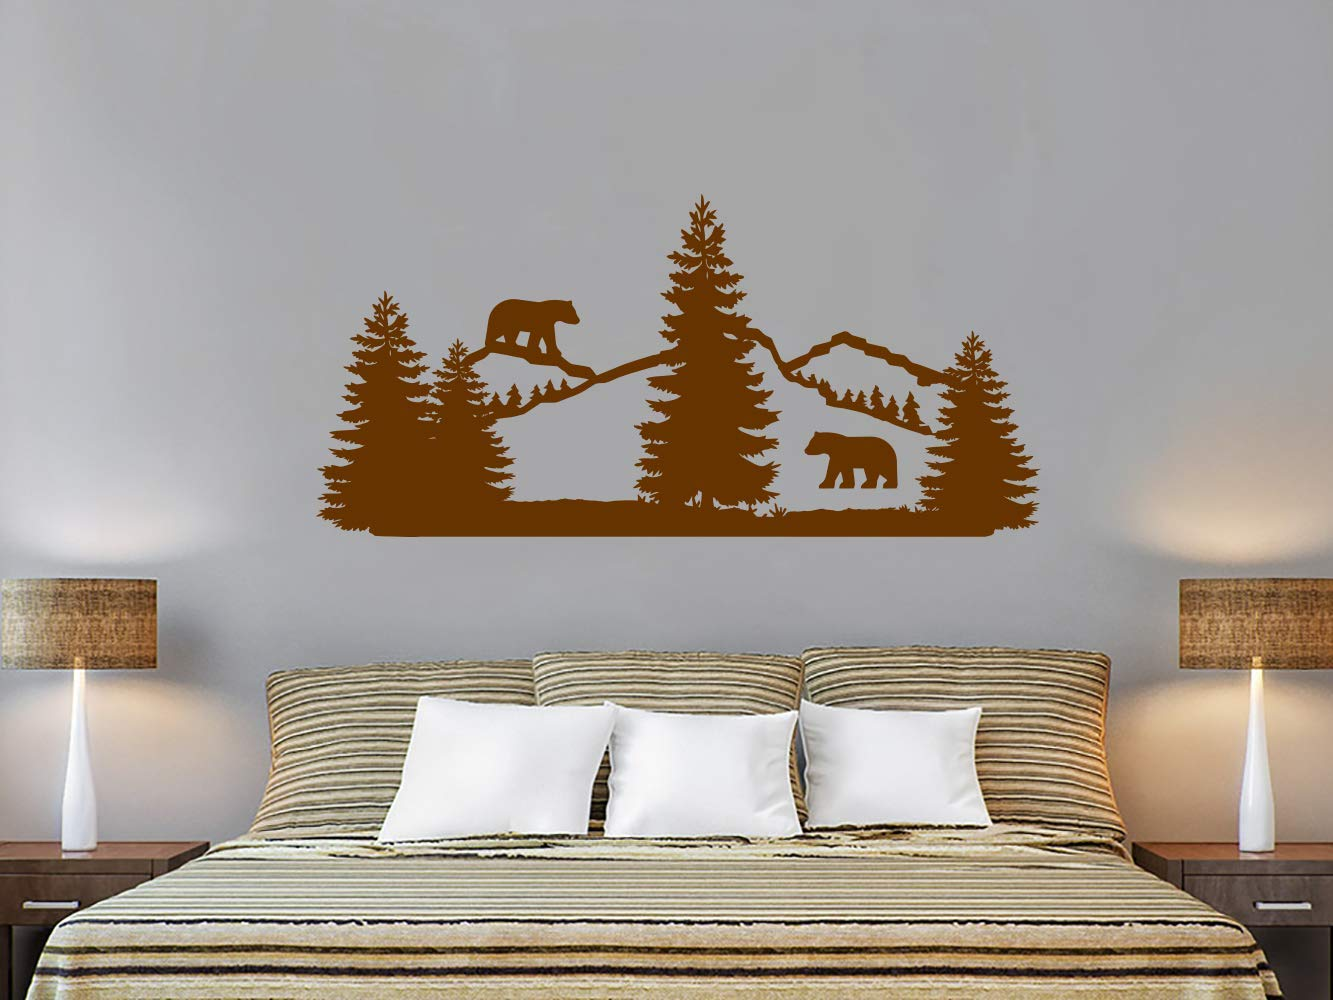 Mountains Woodland Wall Decals. Bear Nursery Wall Vinyl Stickers. Pine Trees Wall Decor. Forest Landscape Nature Wall Art. Mountain Nursery Bedroom C714